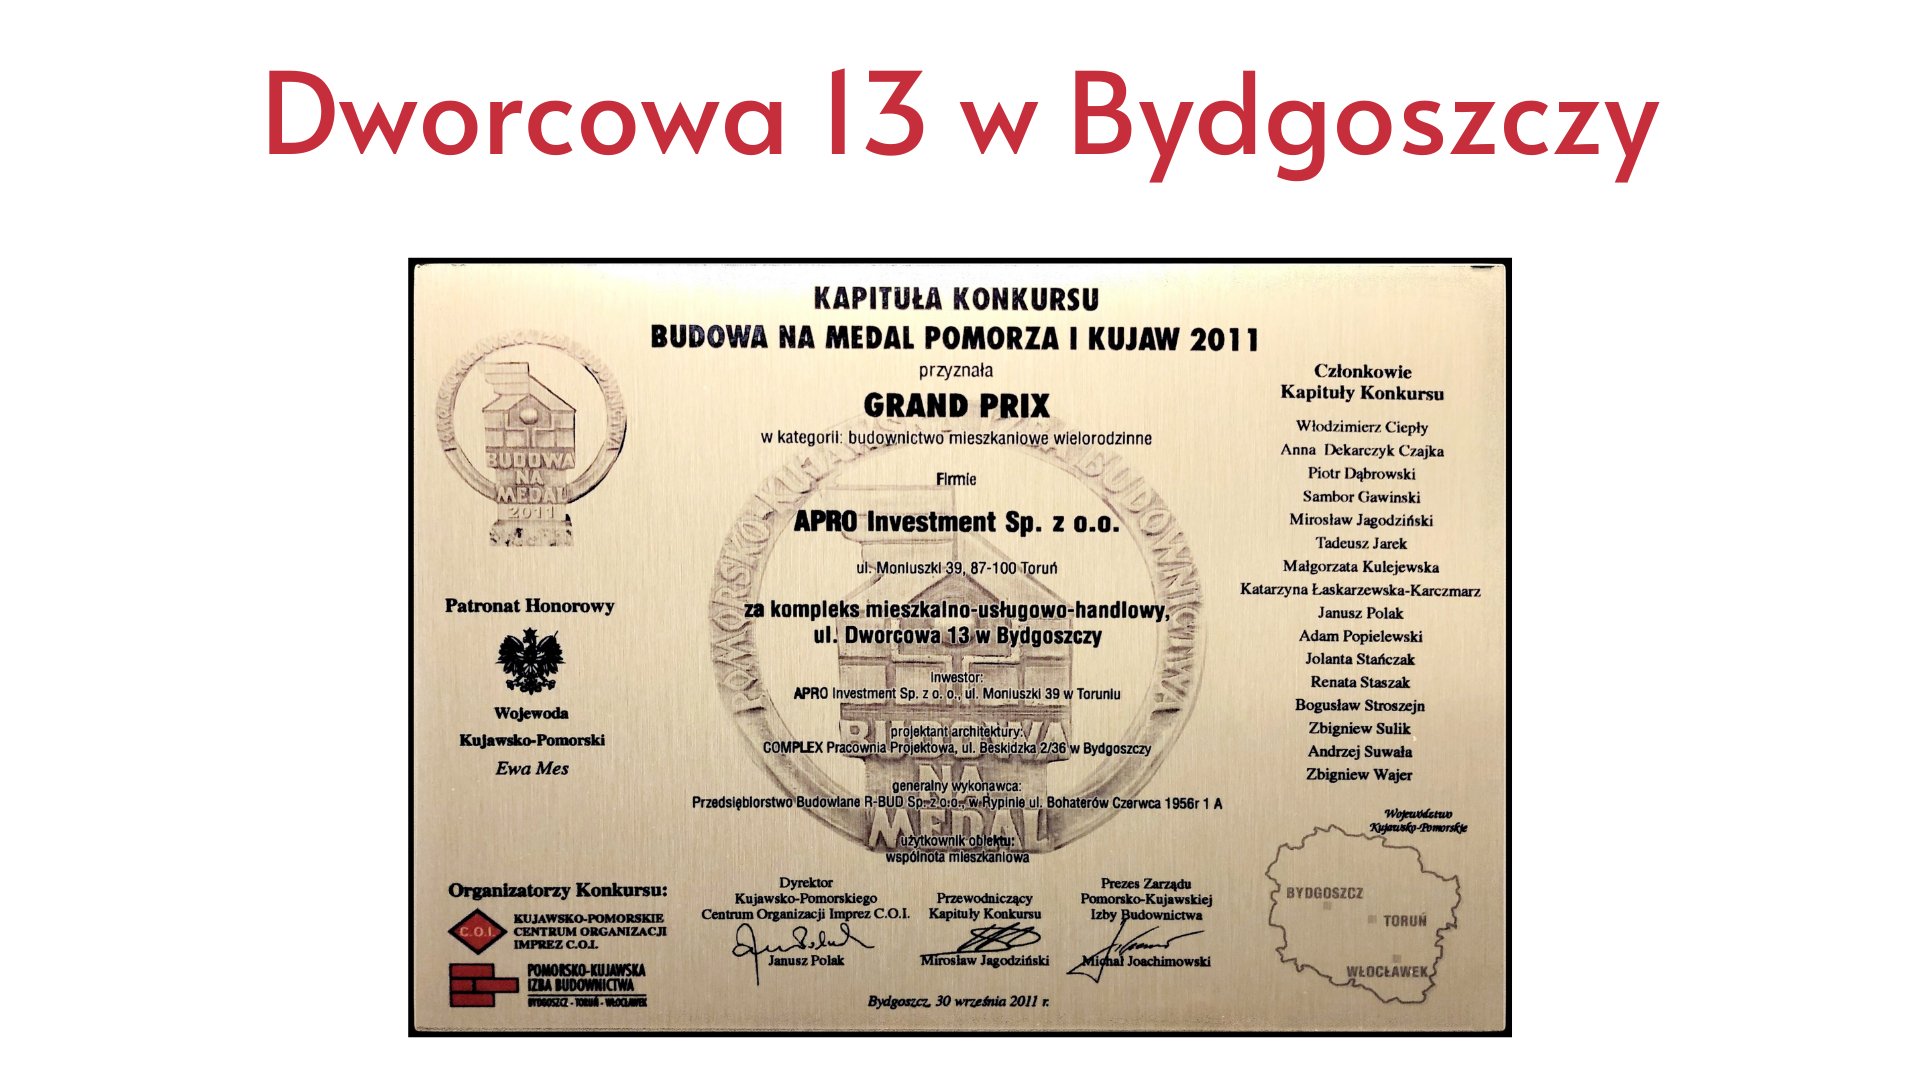 Dworcowa 13 Apro Investment